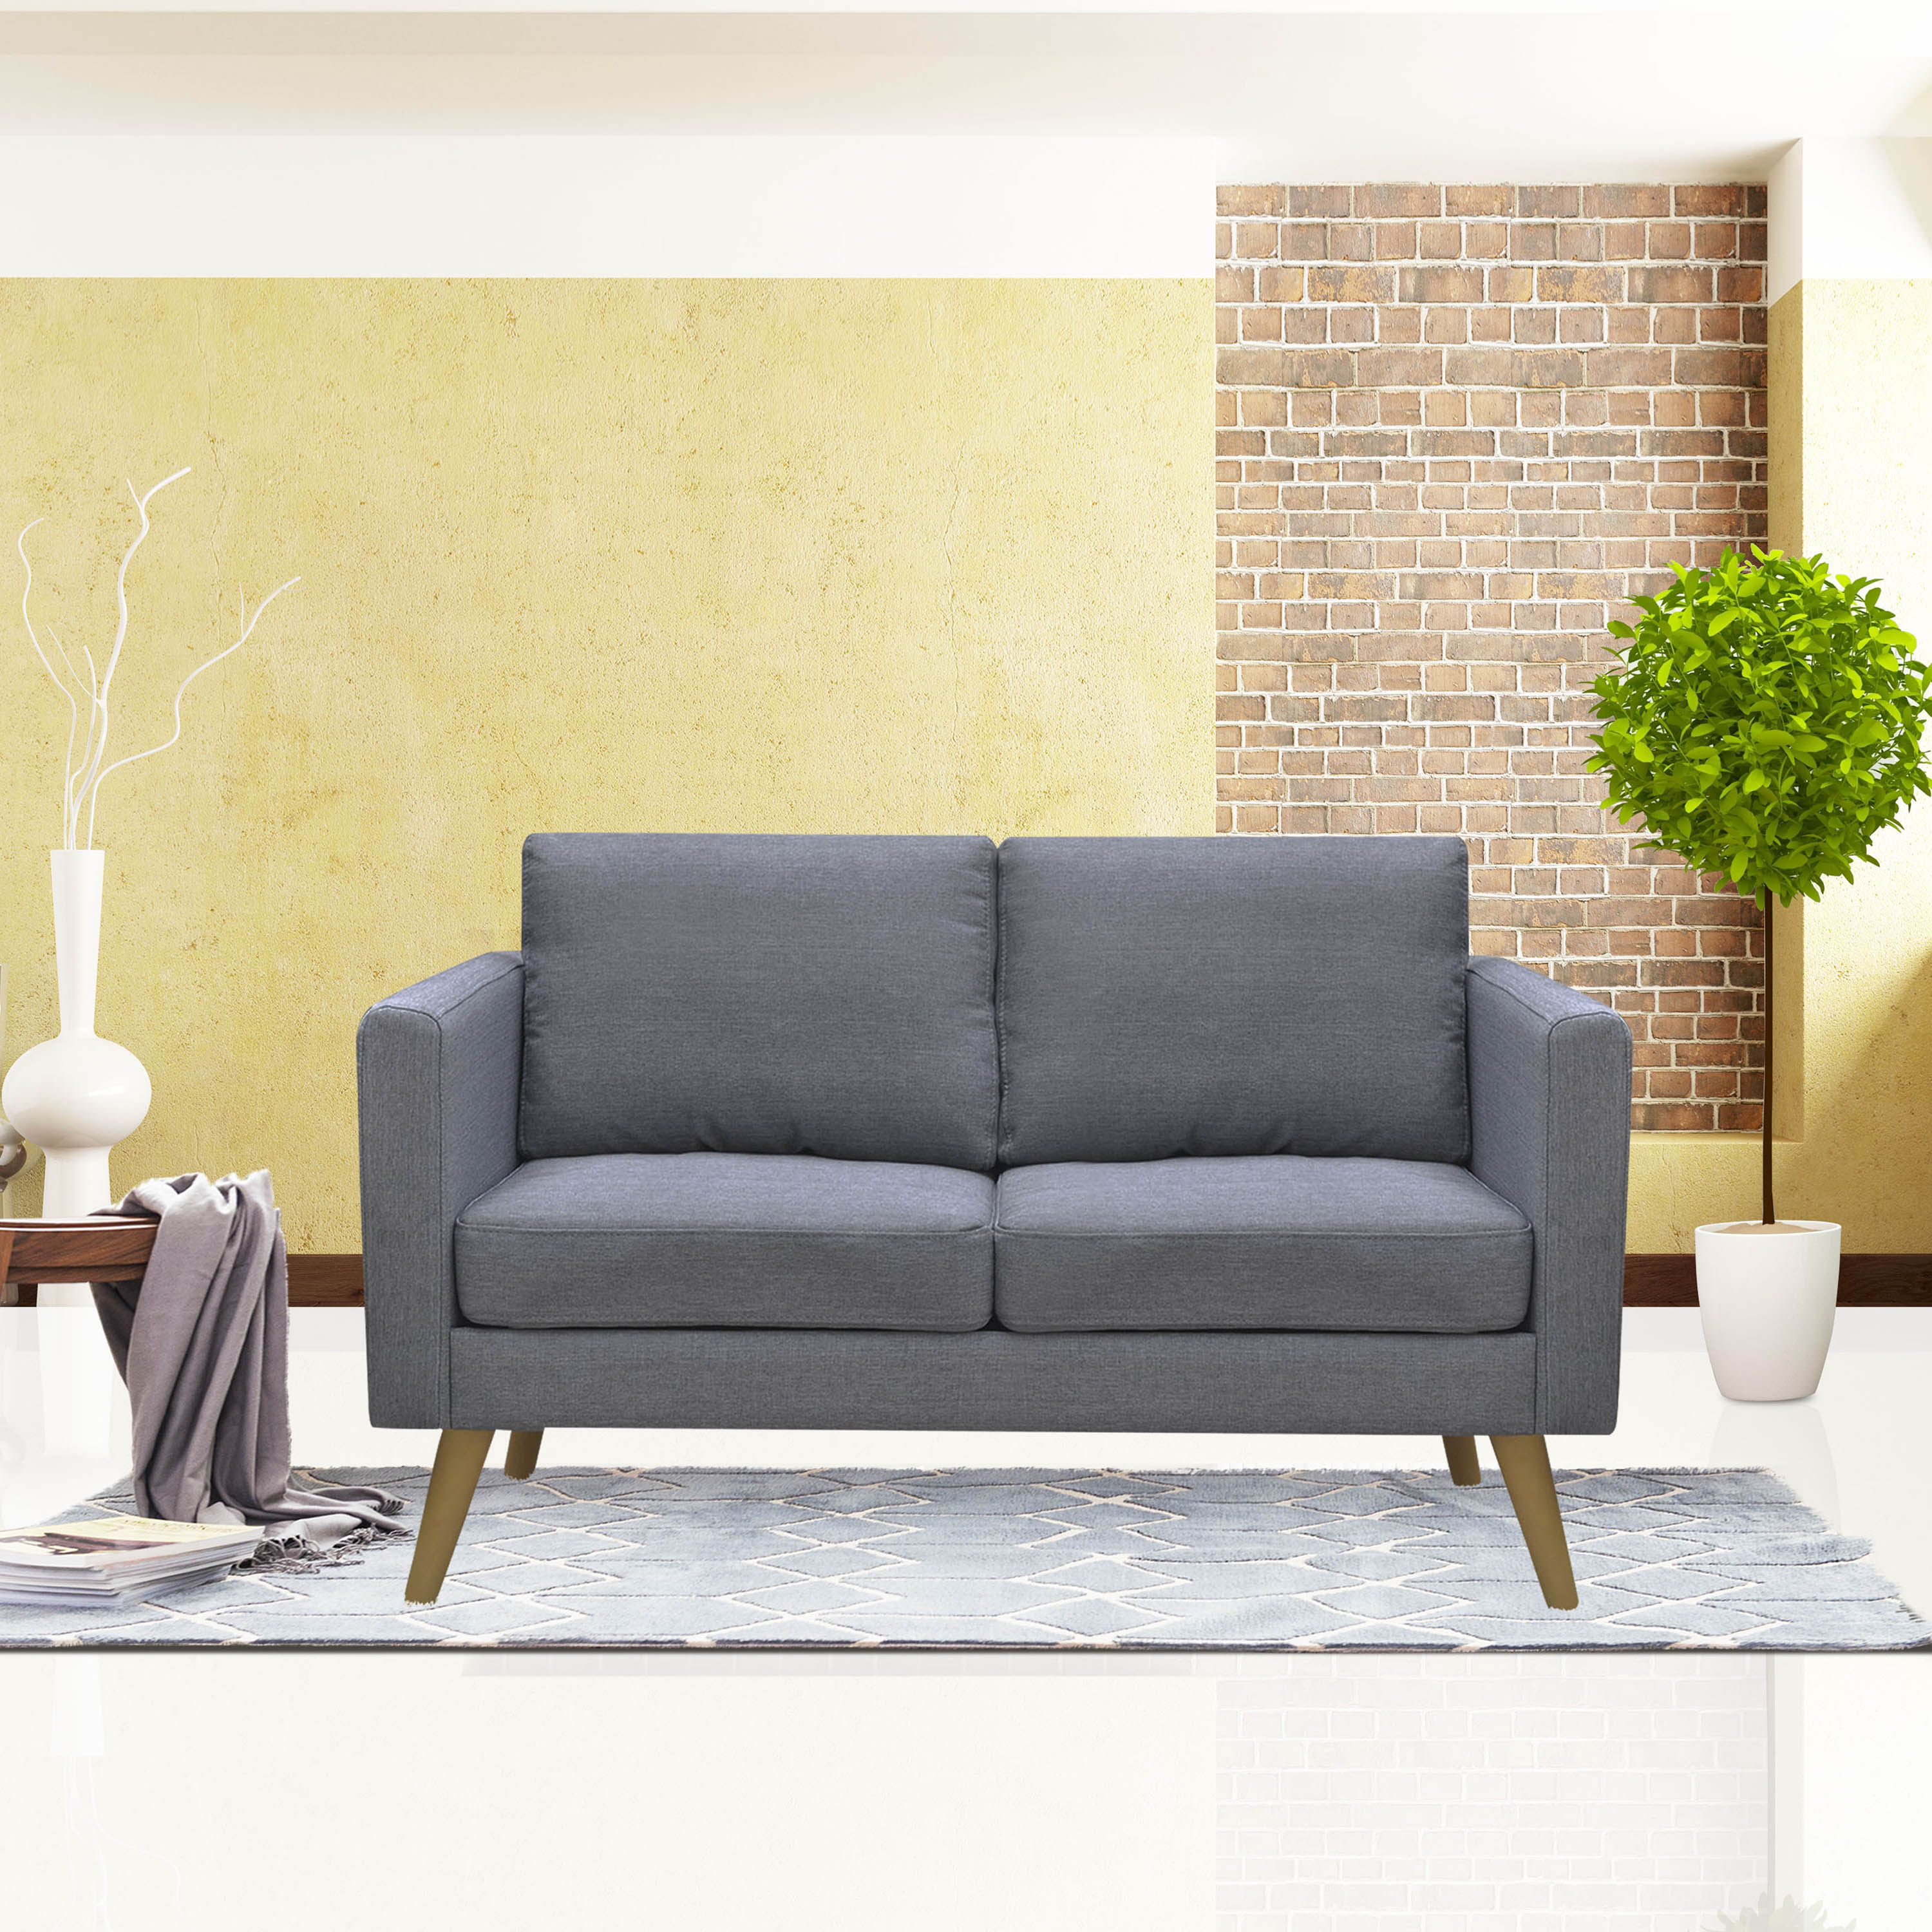 Cloud mountain linen fabric loveseat living room furniture 2 seat sofa with cushions gray walmart com